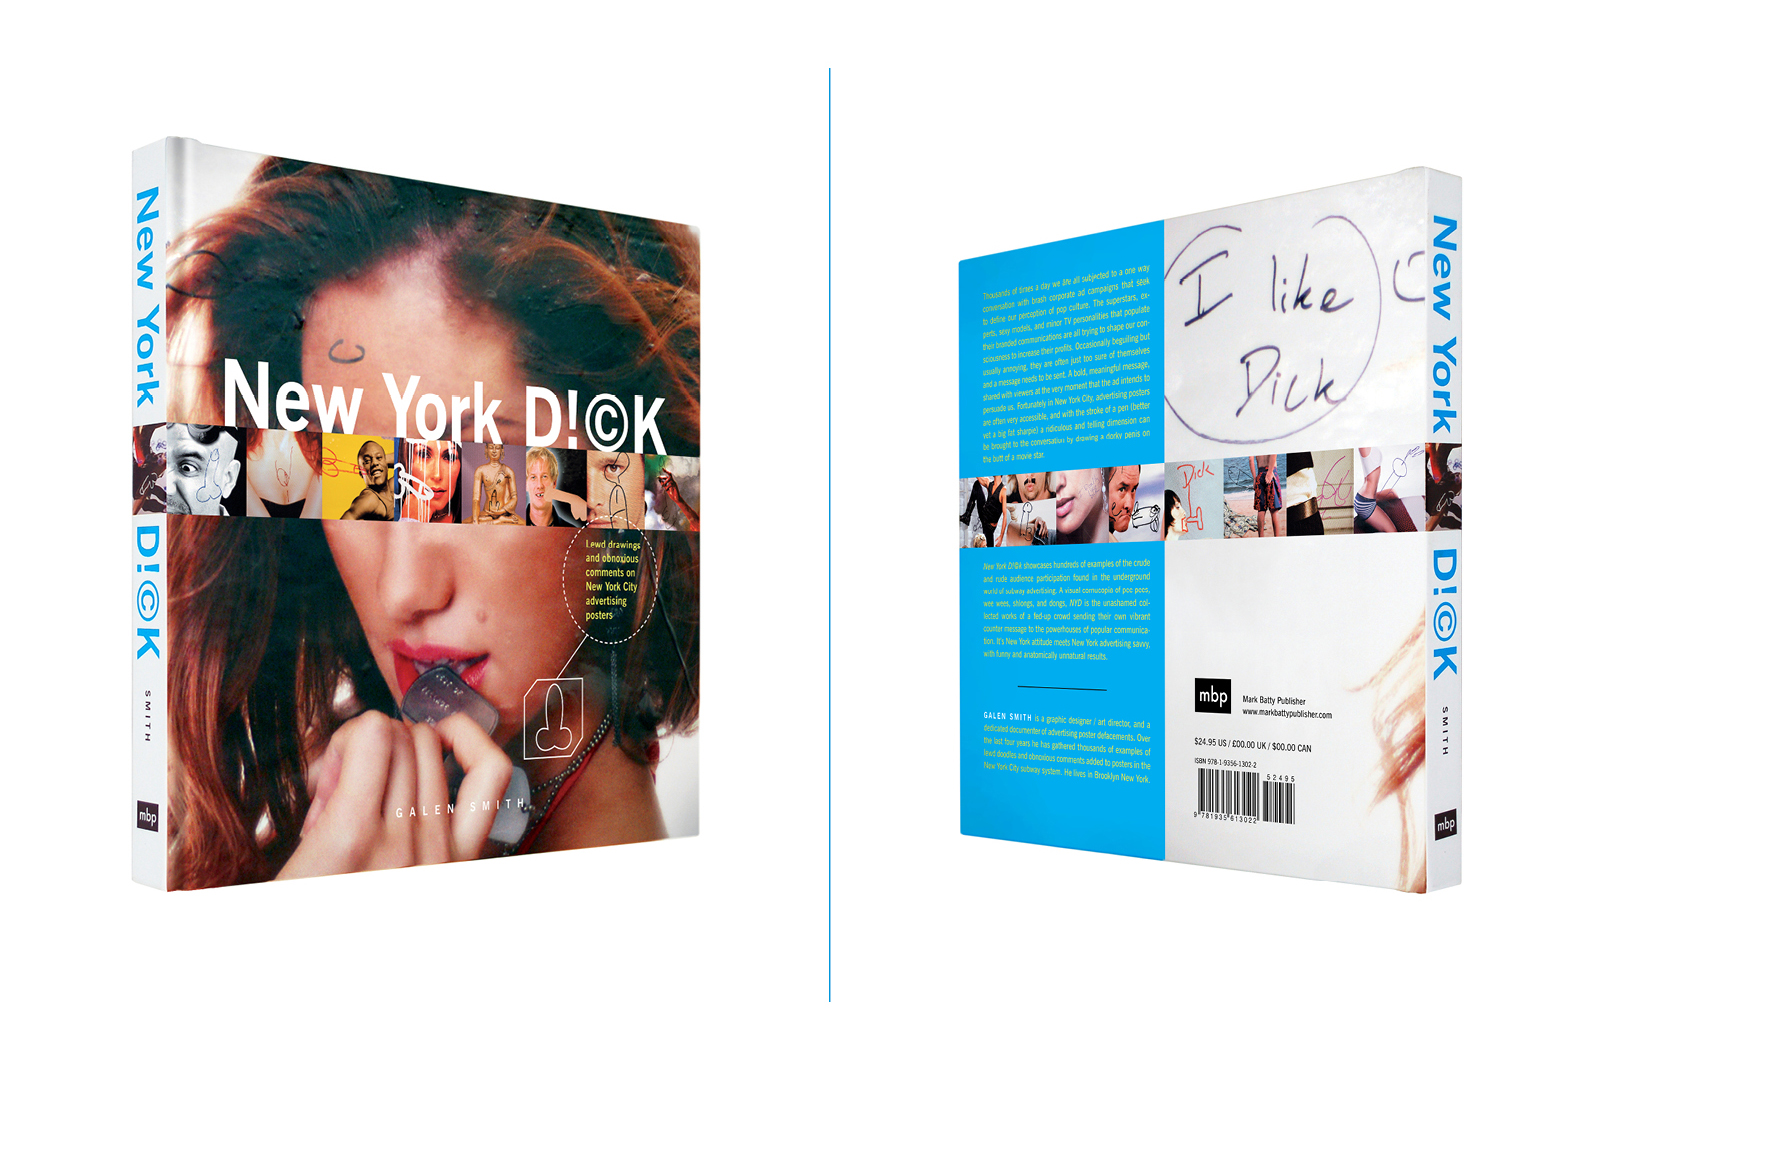 New York Dick -  7.5 X 7.5 in., 128 pg., hardcover with spot uv. Design and photography; Galen Smith // Publisher; Mark Batty Publisher